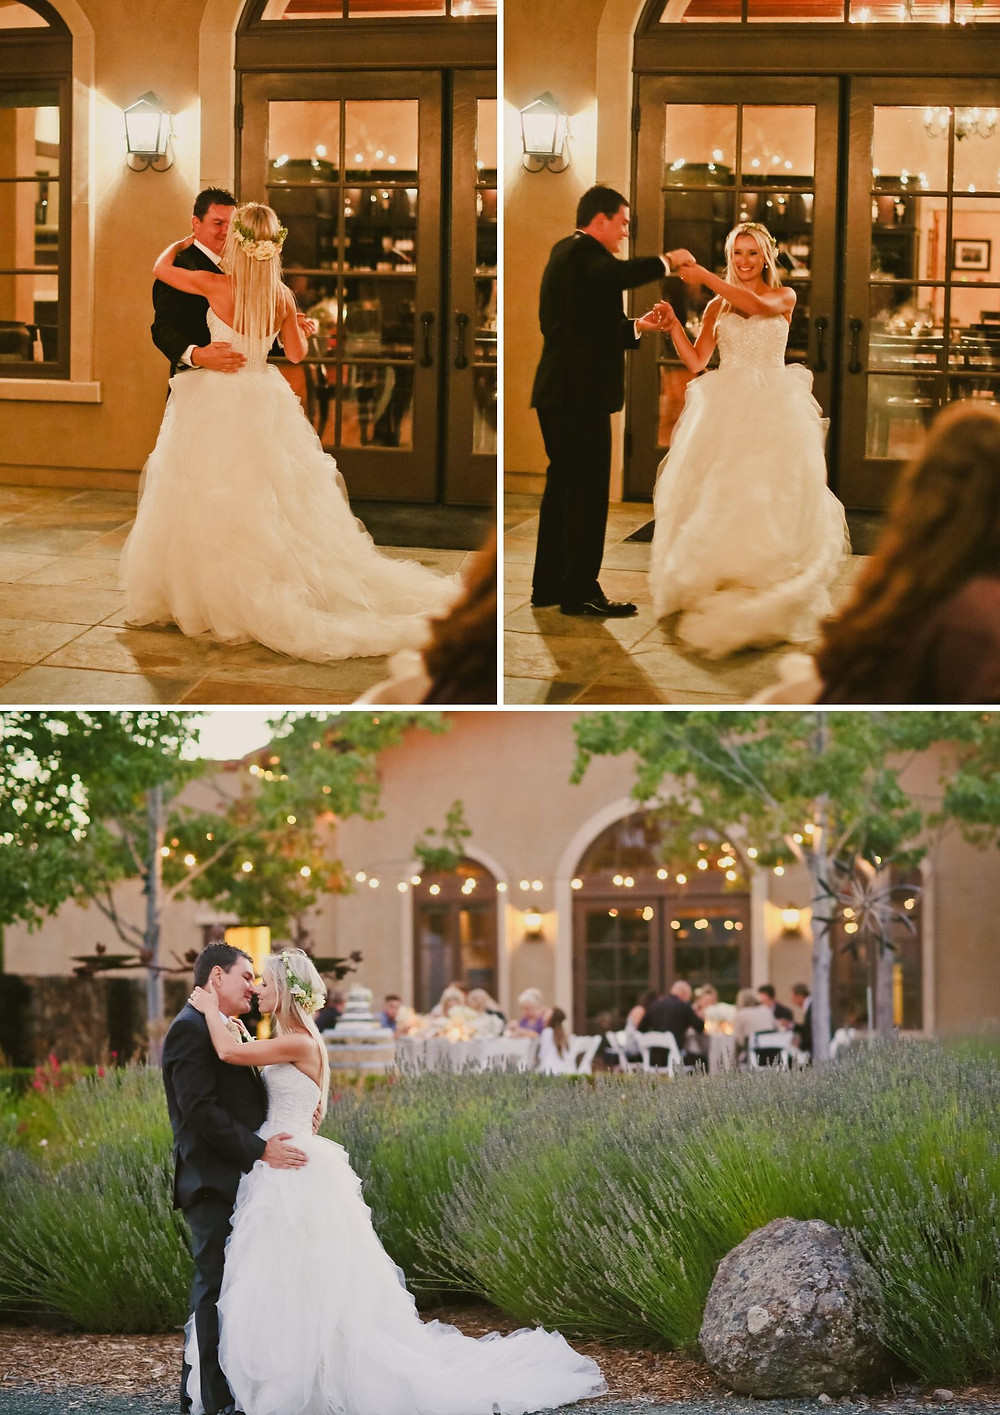 Get married in Napa Valley